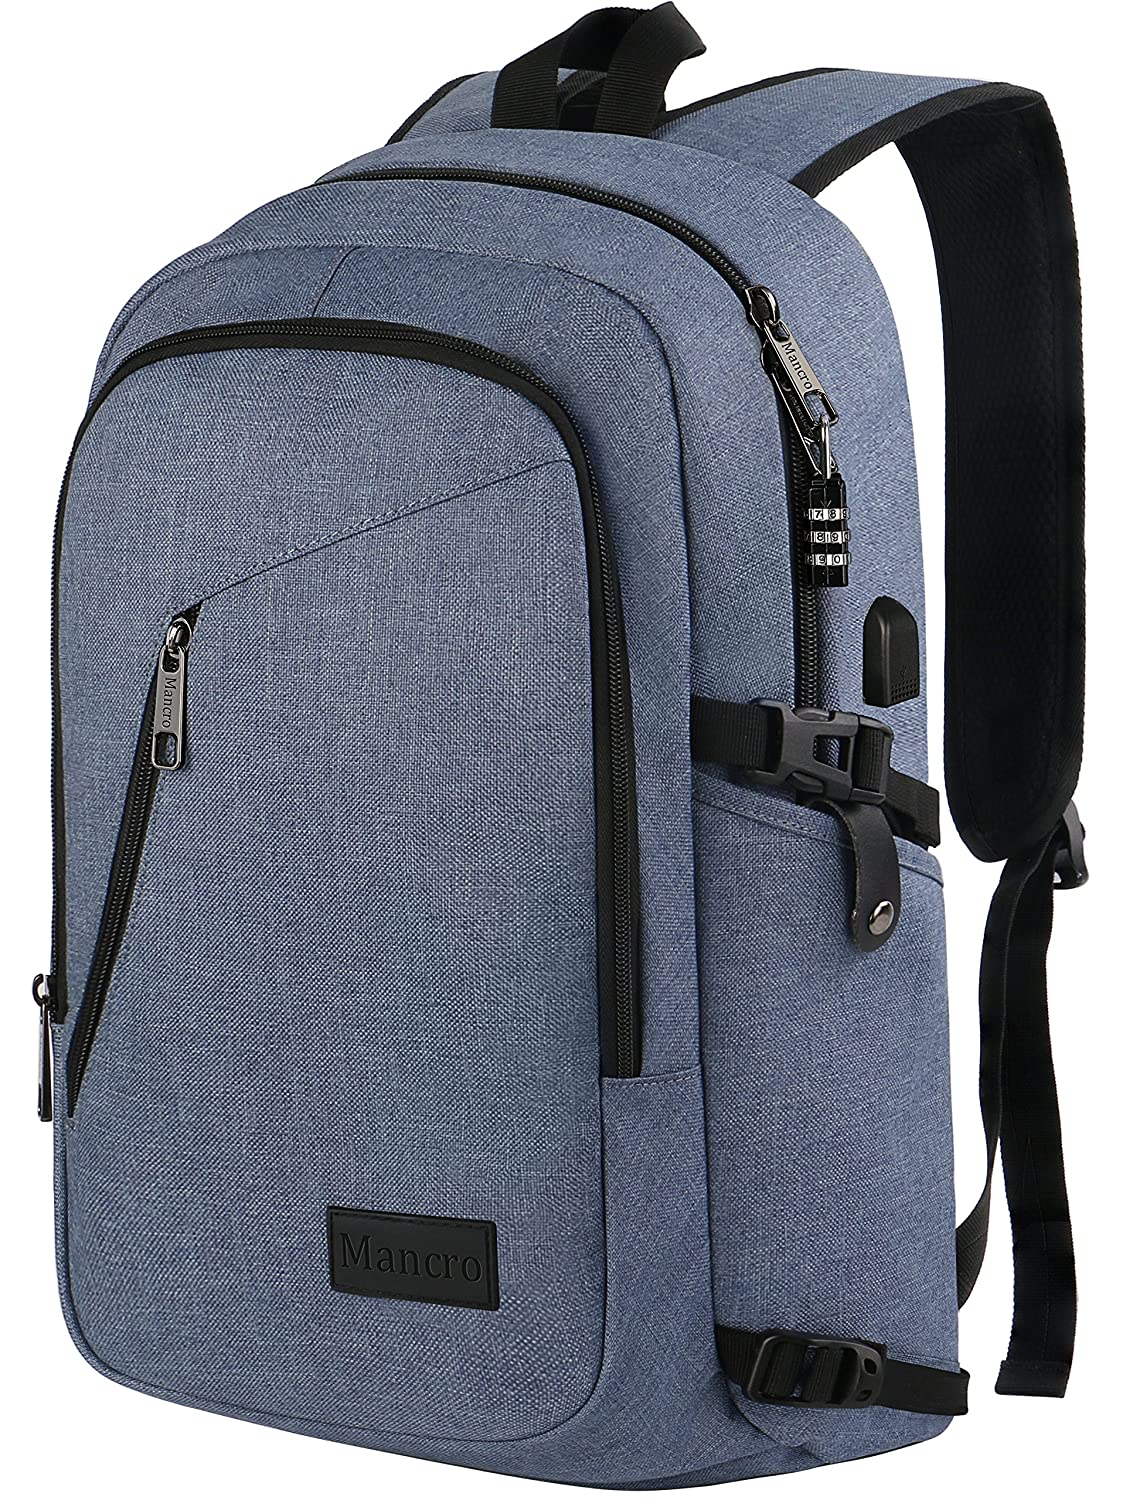 """Travel Backpack For Men, Anti Theft Laptop Backpack W/Usb Port, Lightweight Slim College School Backpack, Water Resistant Sturdy Carry On Rucksack For Work Campus Fit 15.6"""" Computer (Bleached Denim) by Mancro"""